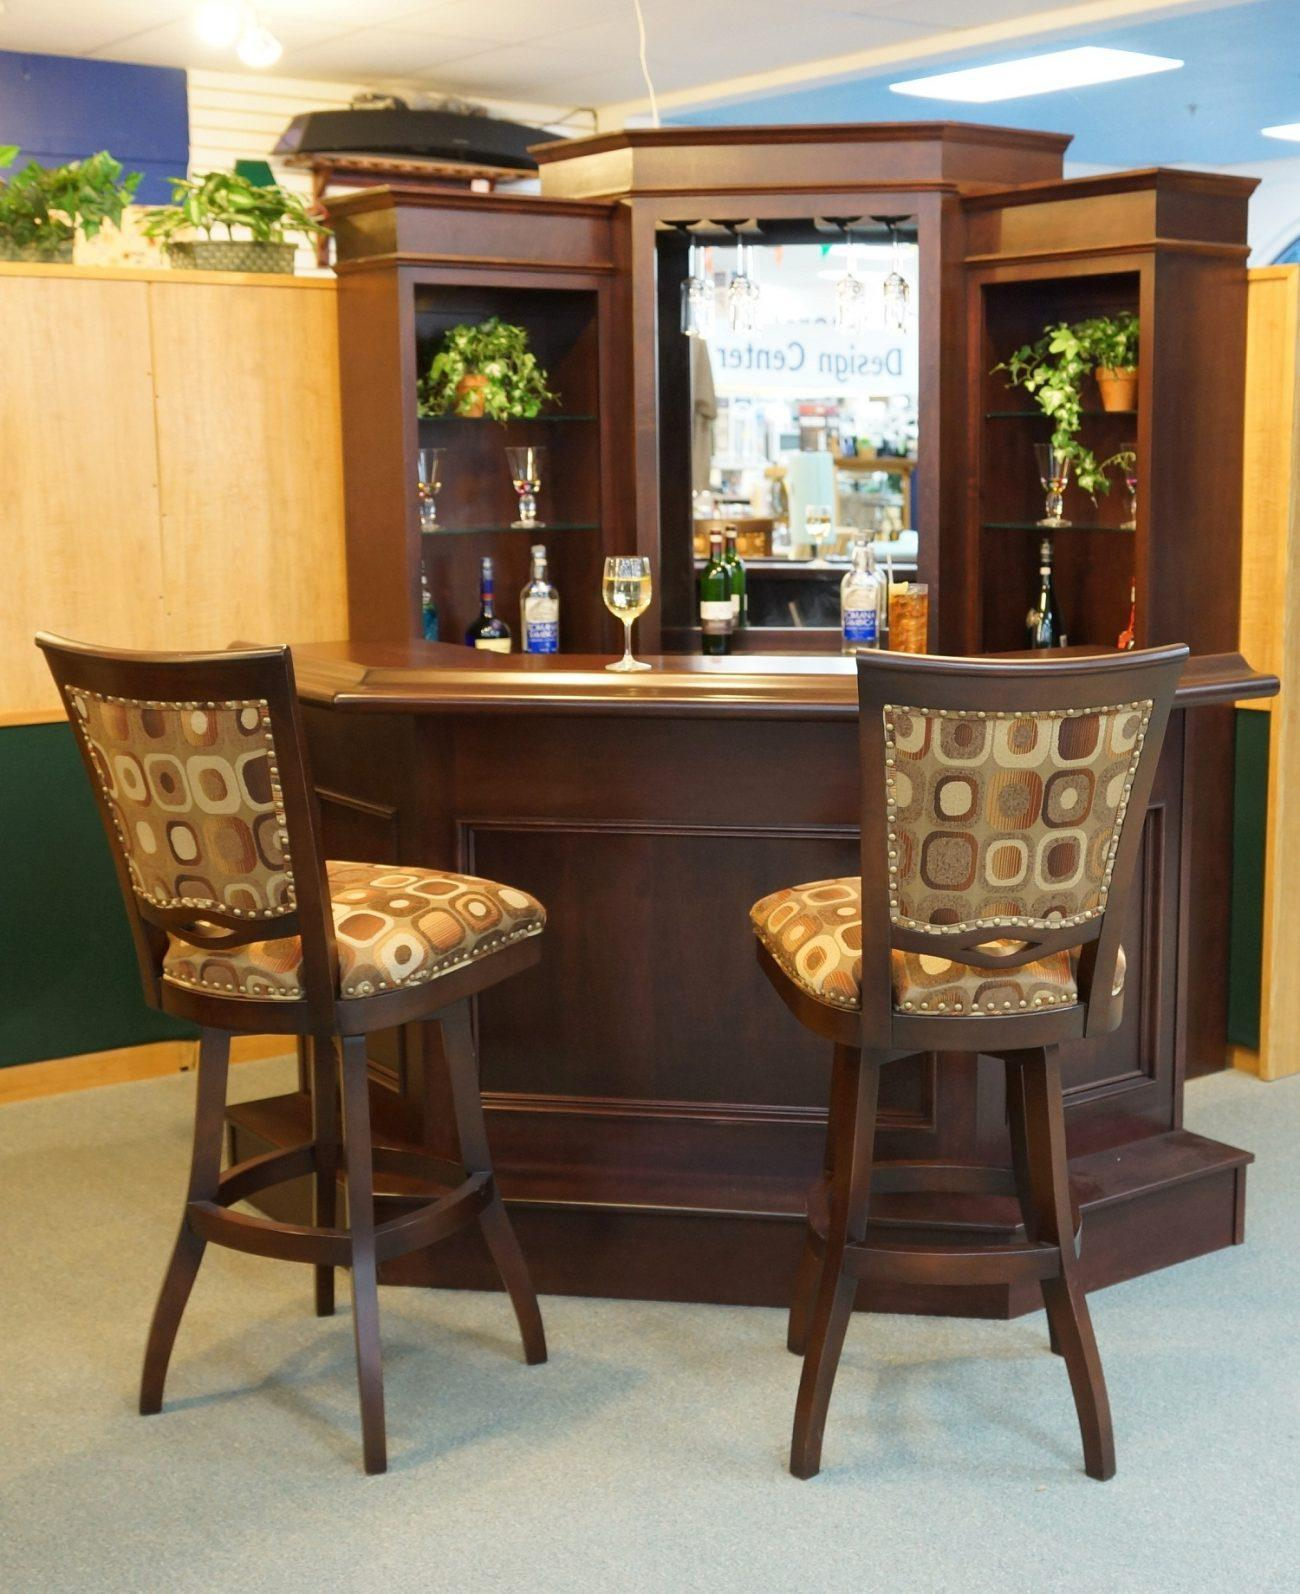 4 Ideas For A Home Bar On Budget